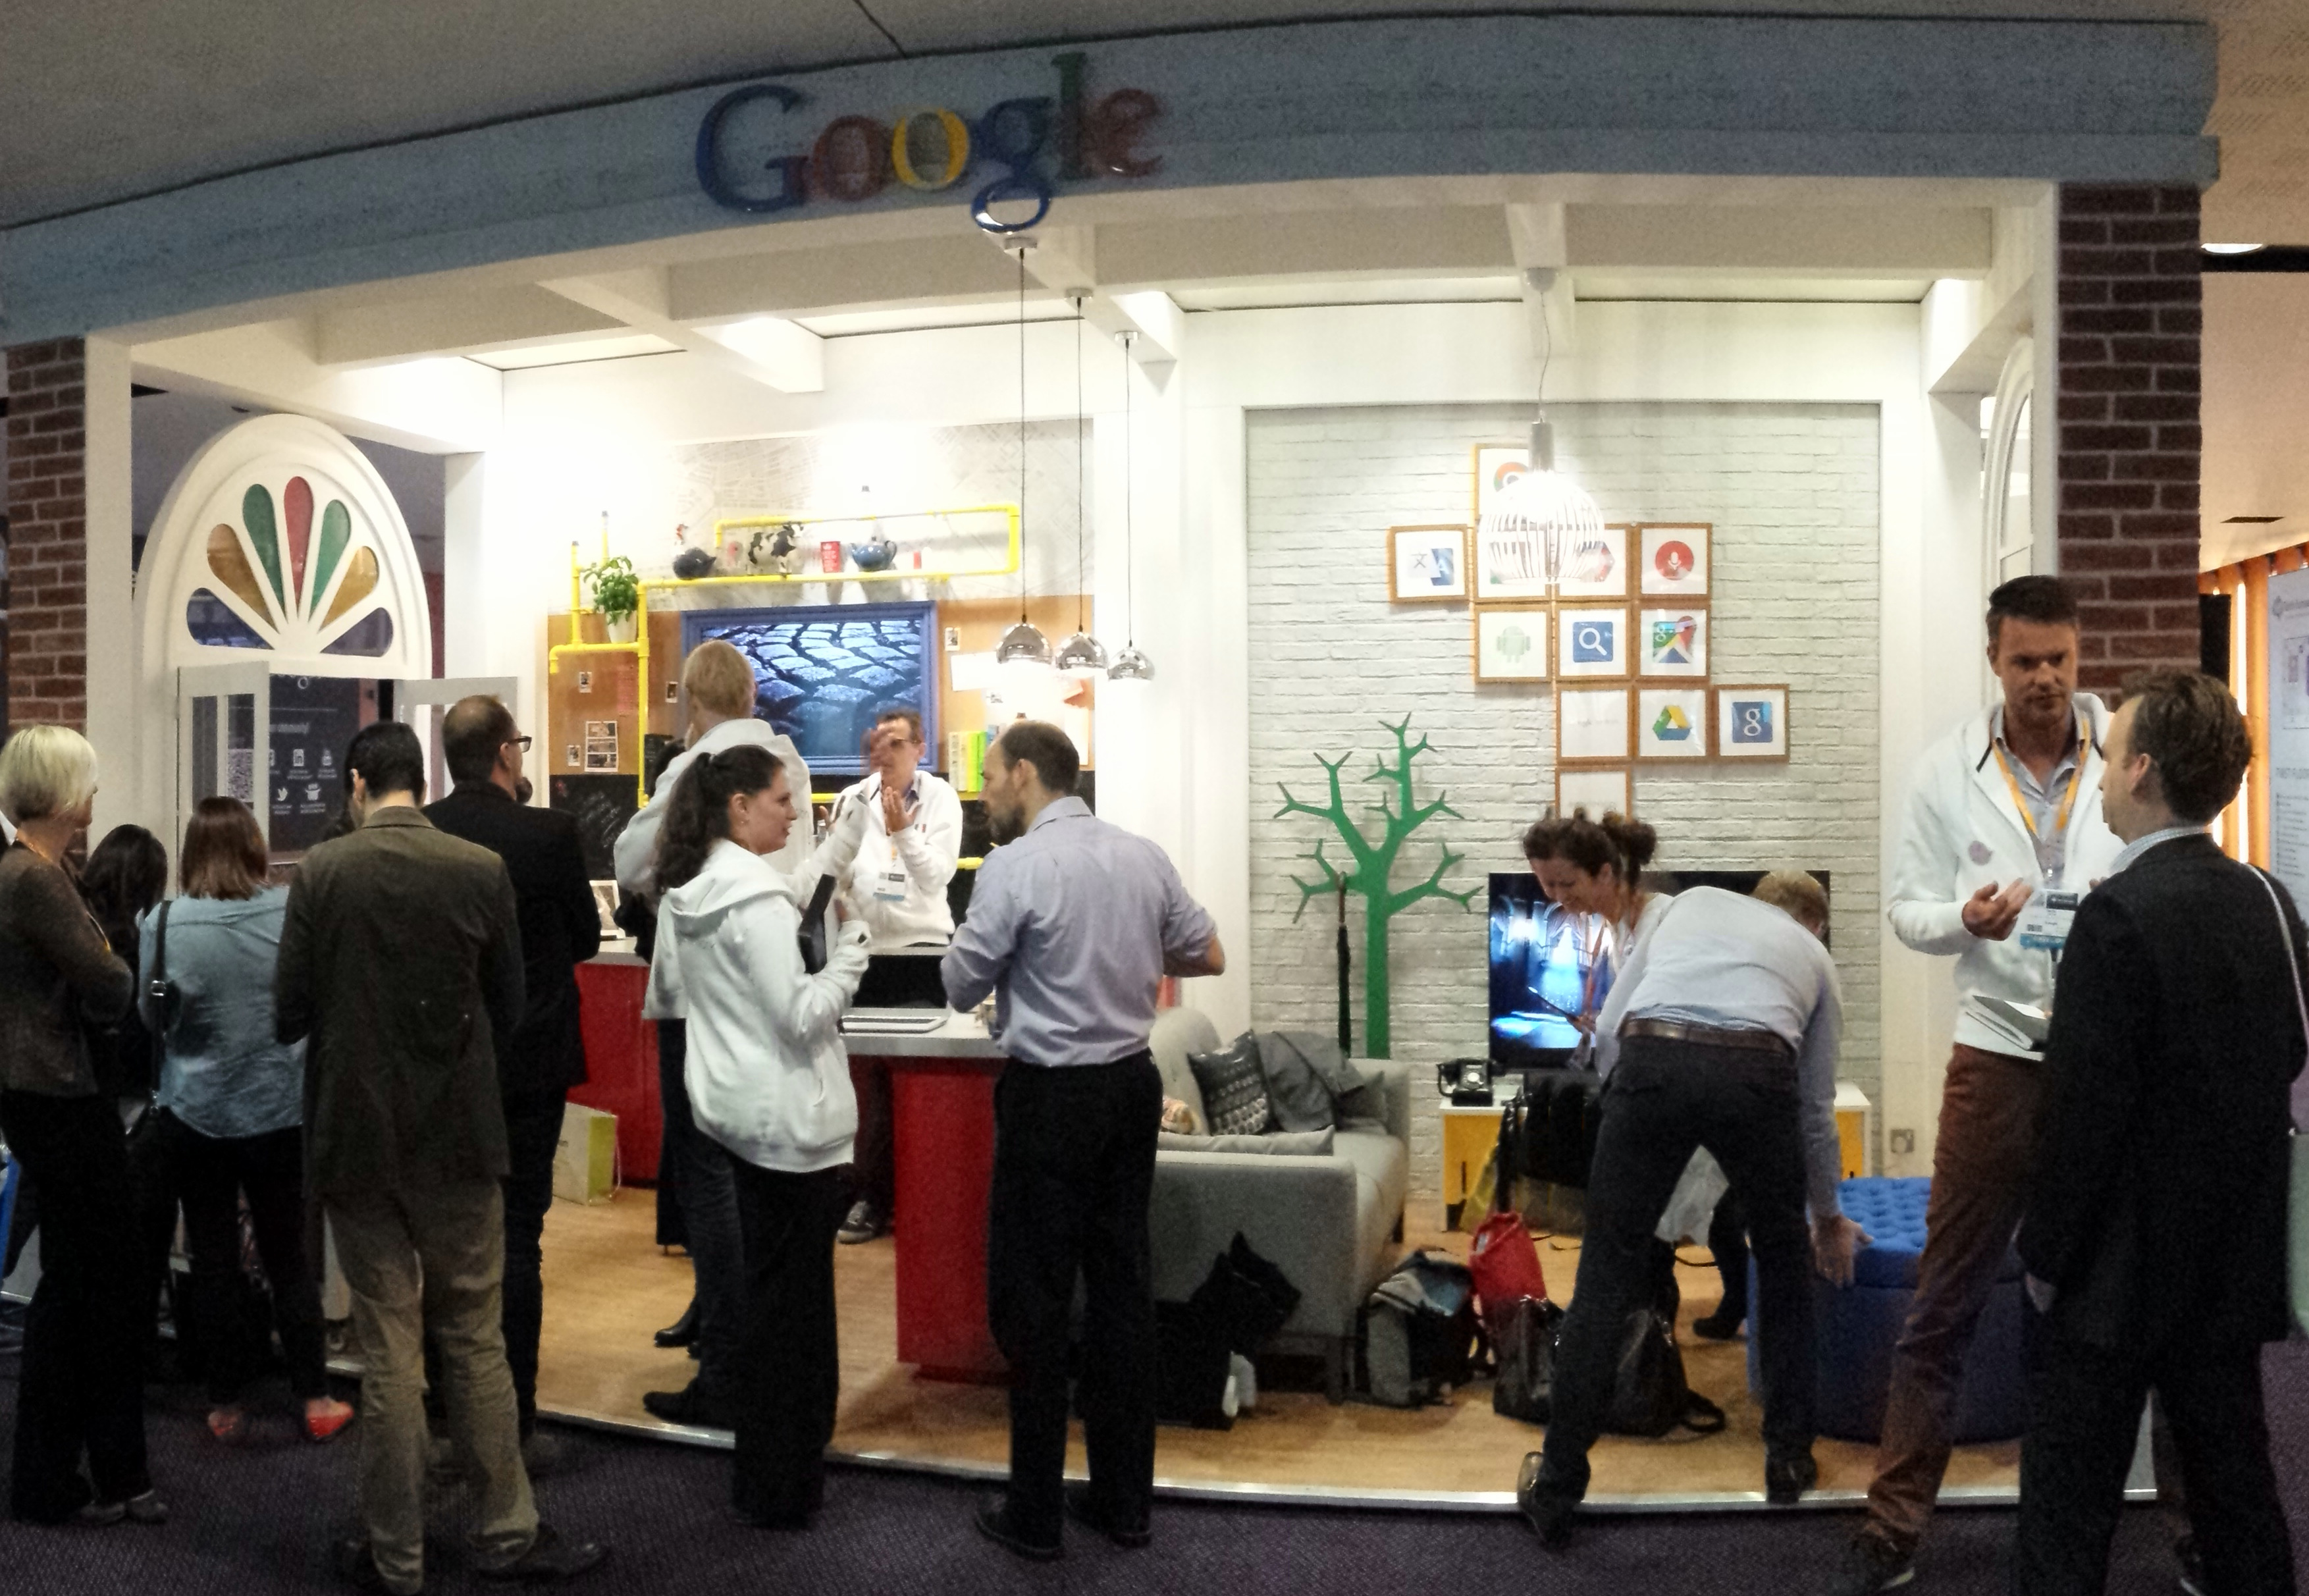 Google-at-Work-booth-@-HR-Tech-Europe-2014